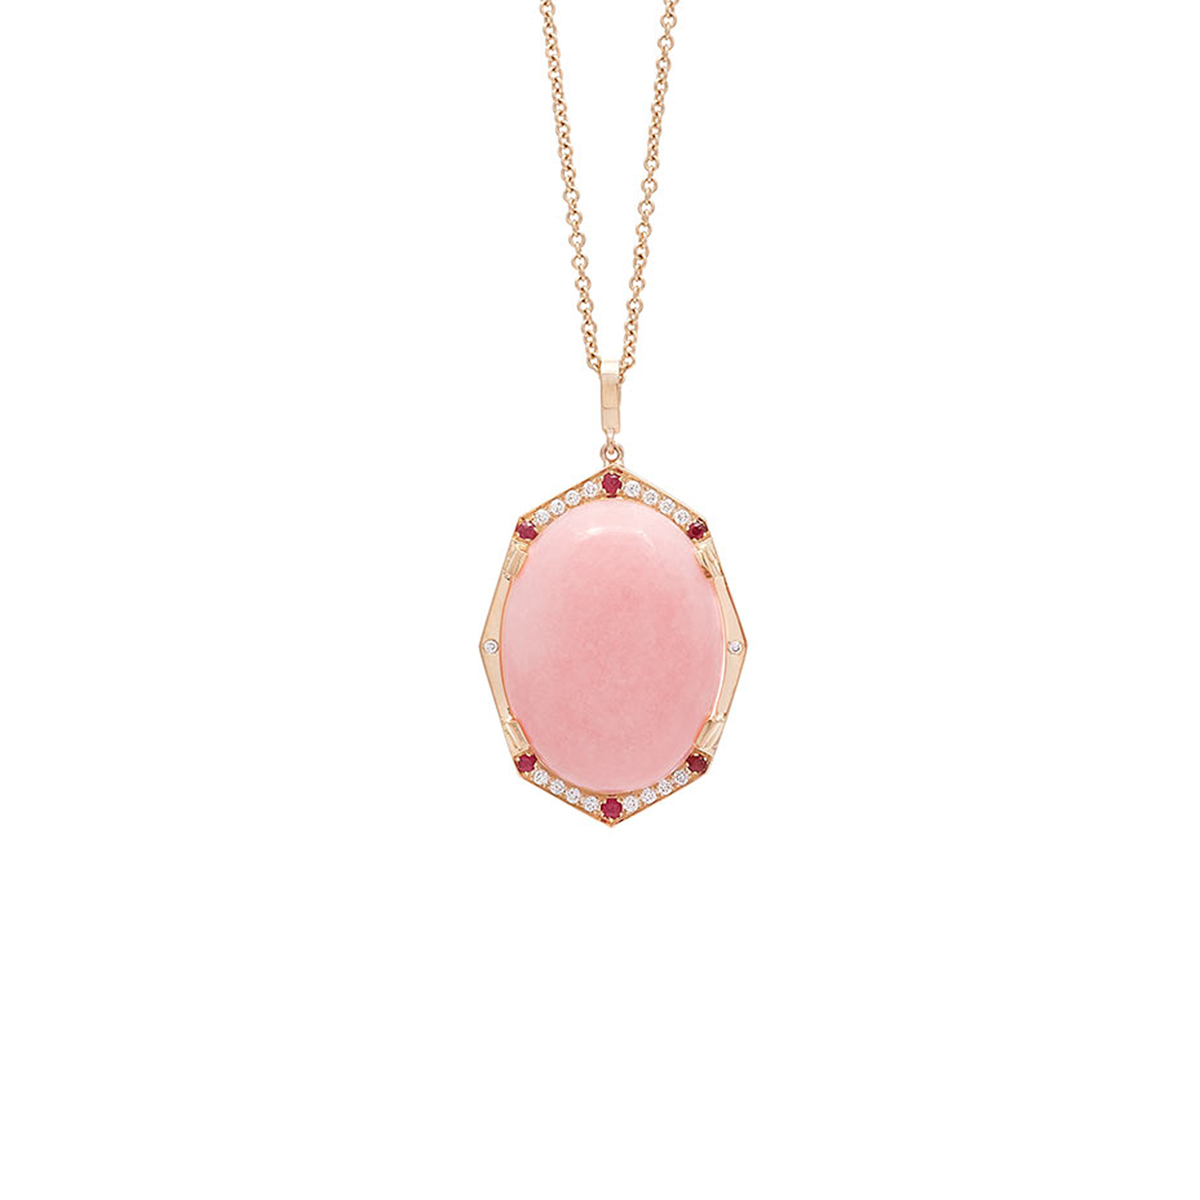 Affinity Sans Pendant-with pink opal